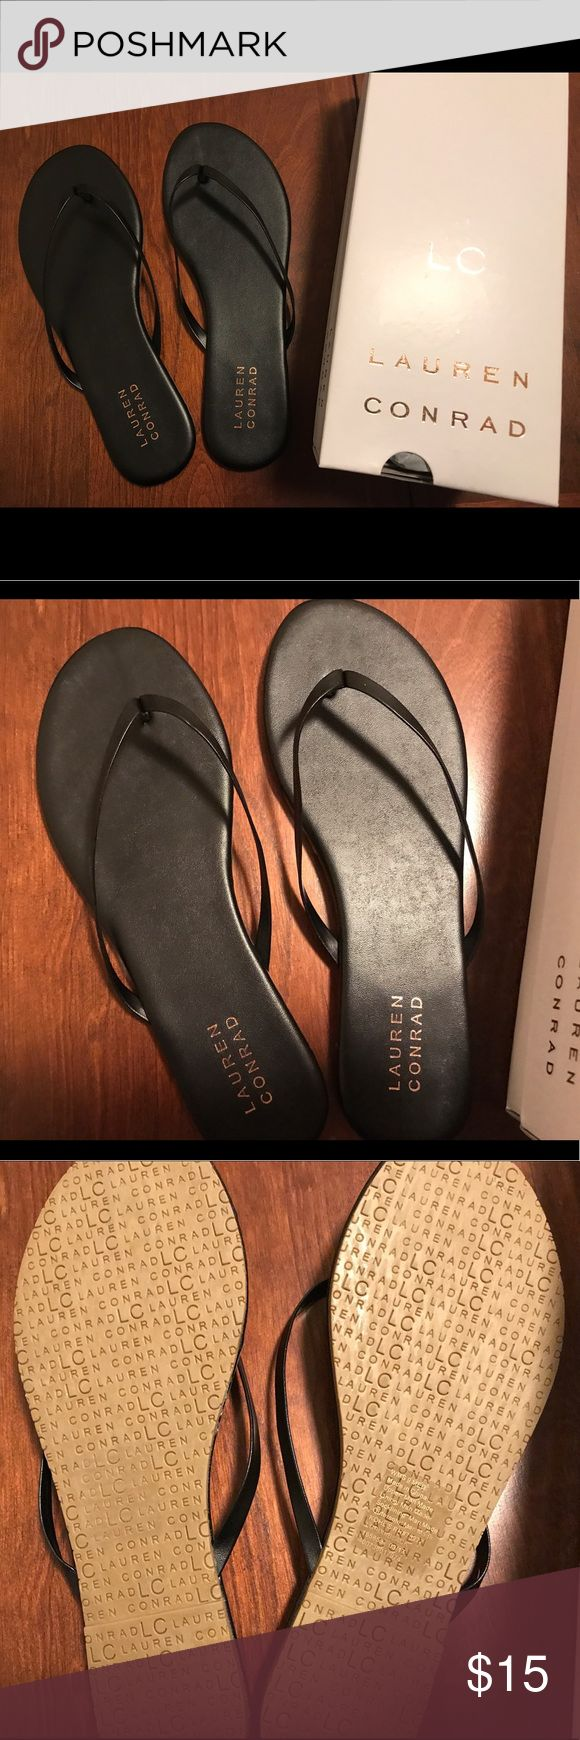 LC Lauren Conrad Flip Flop Sandals BRAND NEW Lauren Conrad Flip Flop Sandals. Size 9. BRAND NEW. Includes original box. Two available for purchase (price includes one pair). LC Lauren Conrad Shoes Sandals